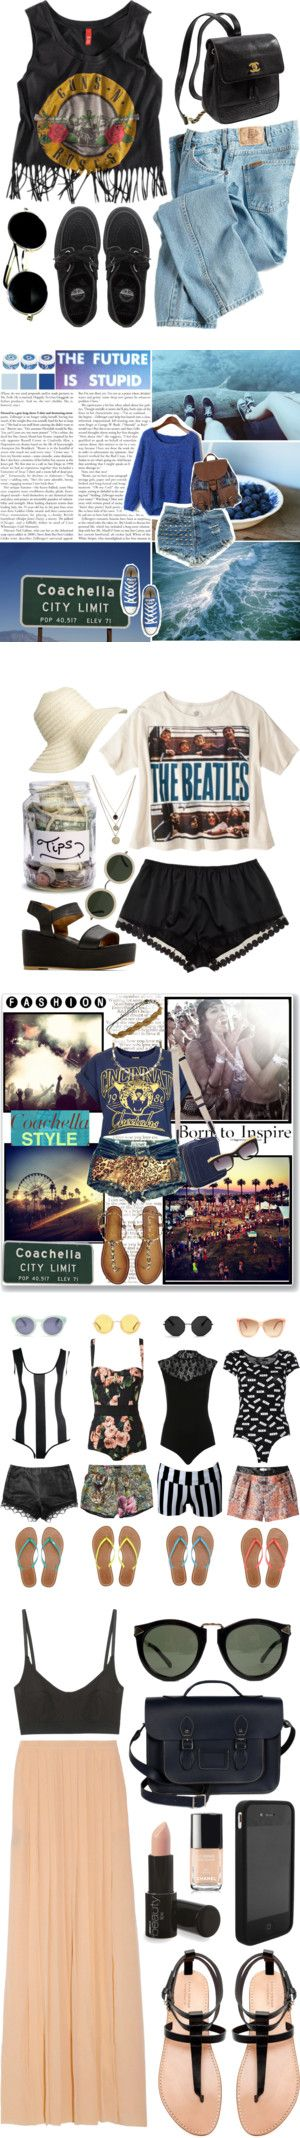 """""""ERMAHGERD Coachella Starts Tomorrow! Here, 6 Outfit Ideas From Members"""" by polyvore-editorial ❤ liked on Polyvore"""